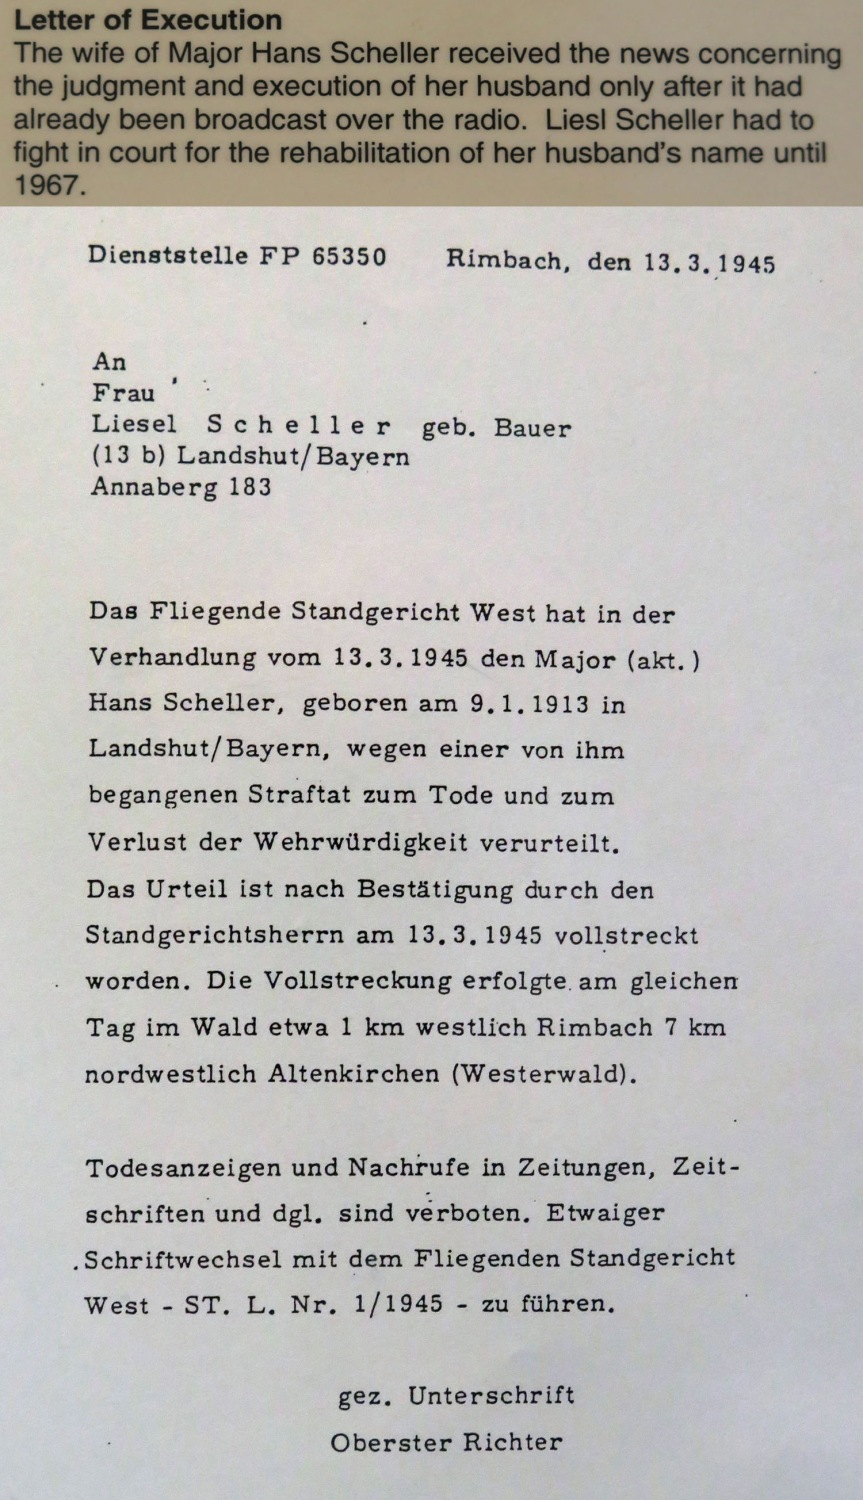 Germany-Bridge-At-Remagen-Peace-Museum-Hans-Sheller-Letter-of-Execution